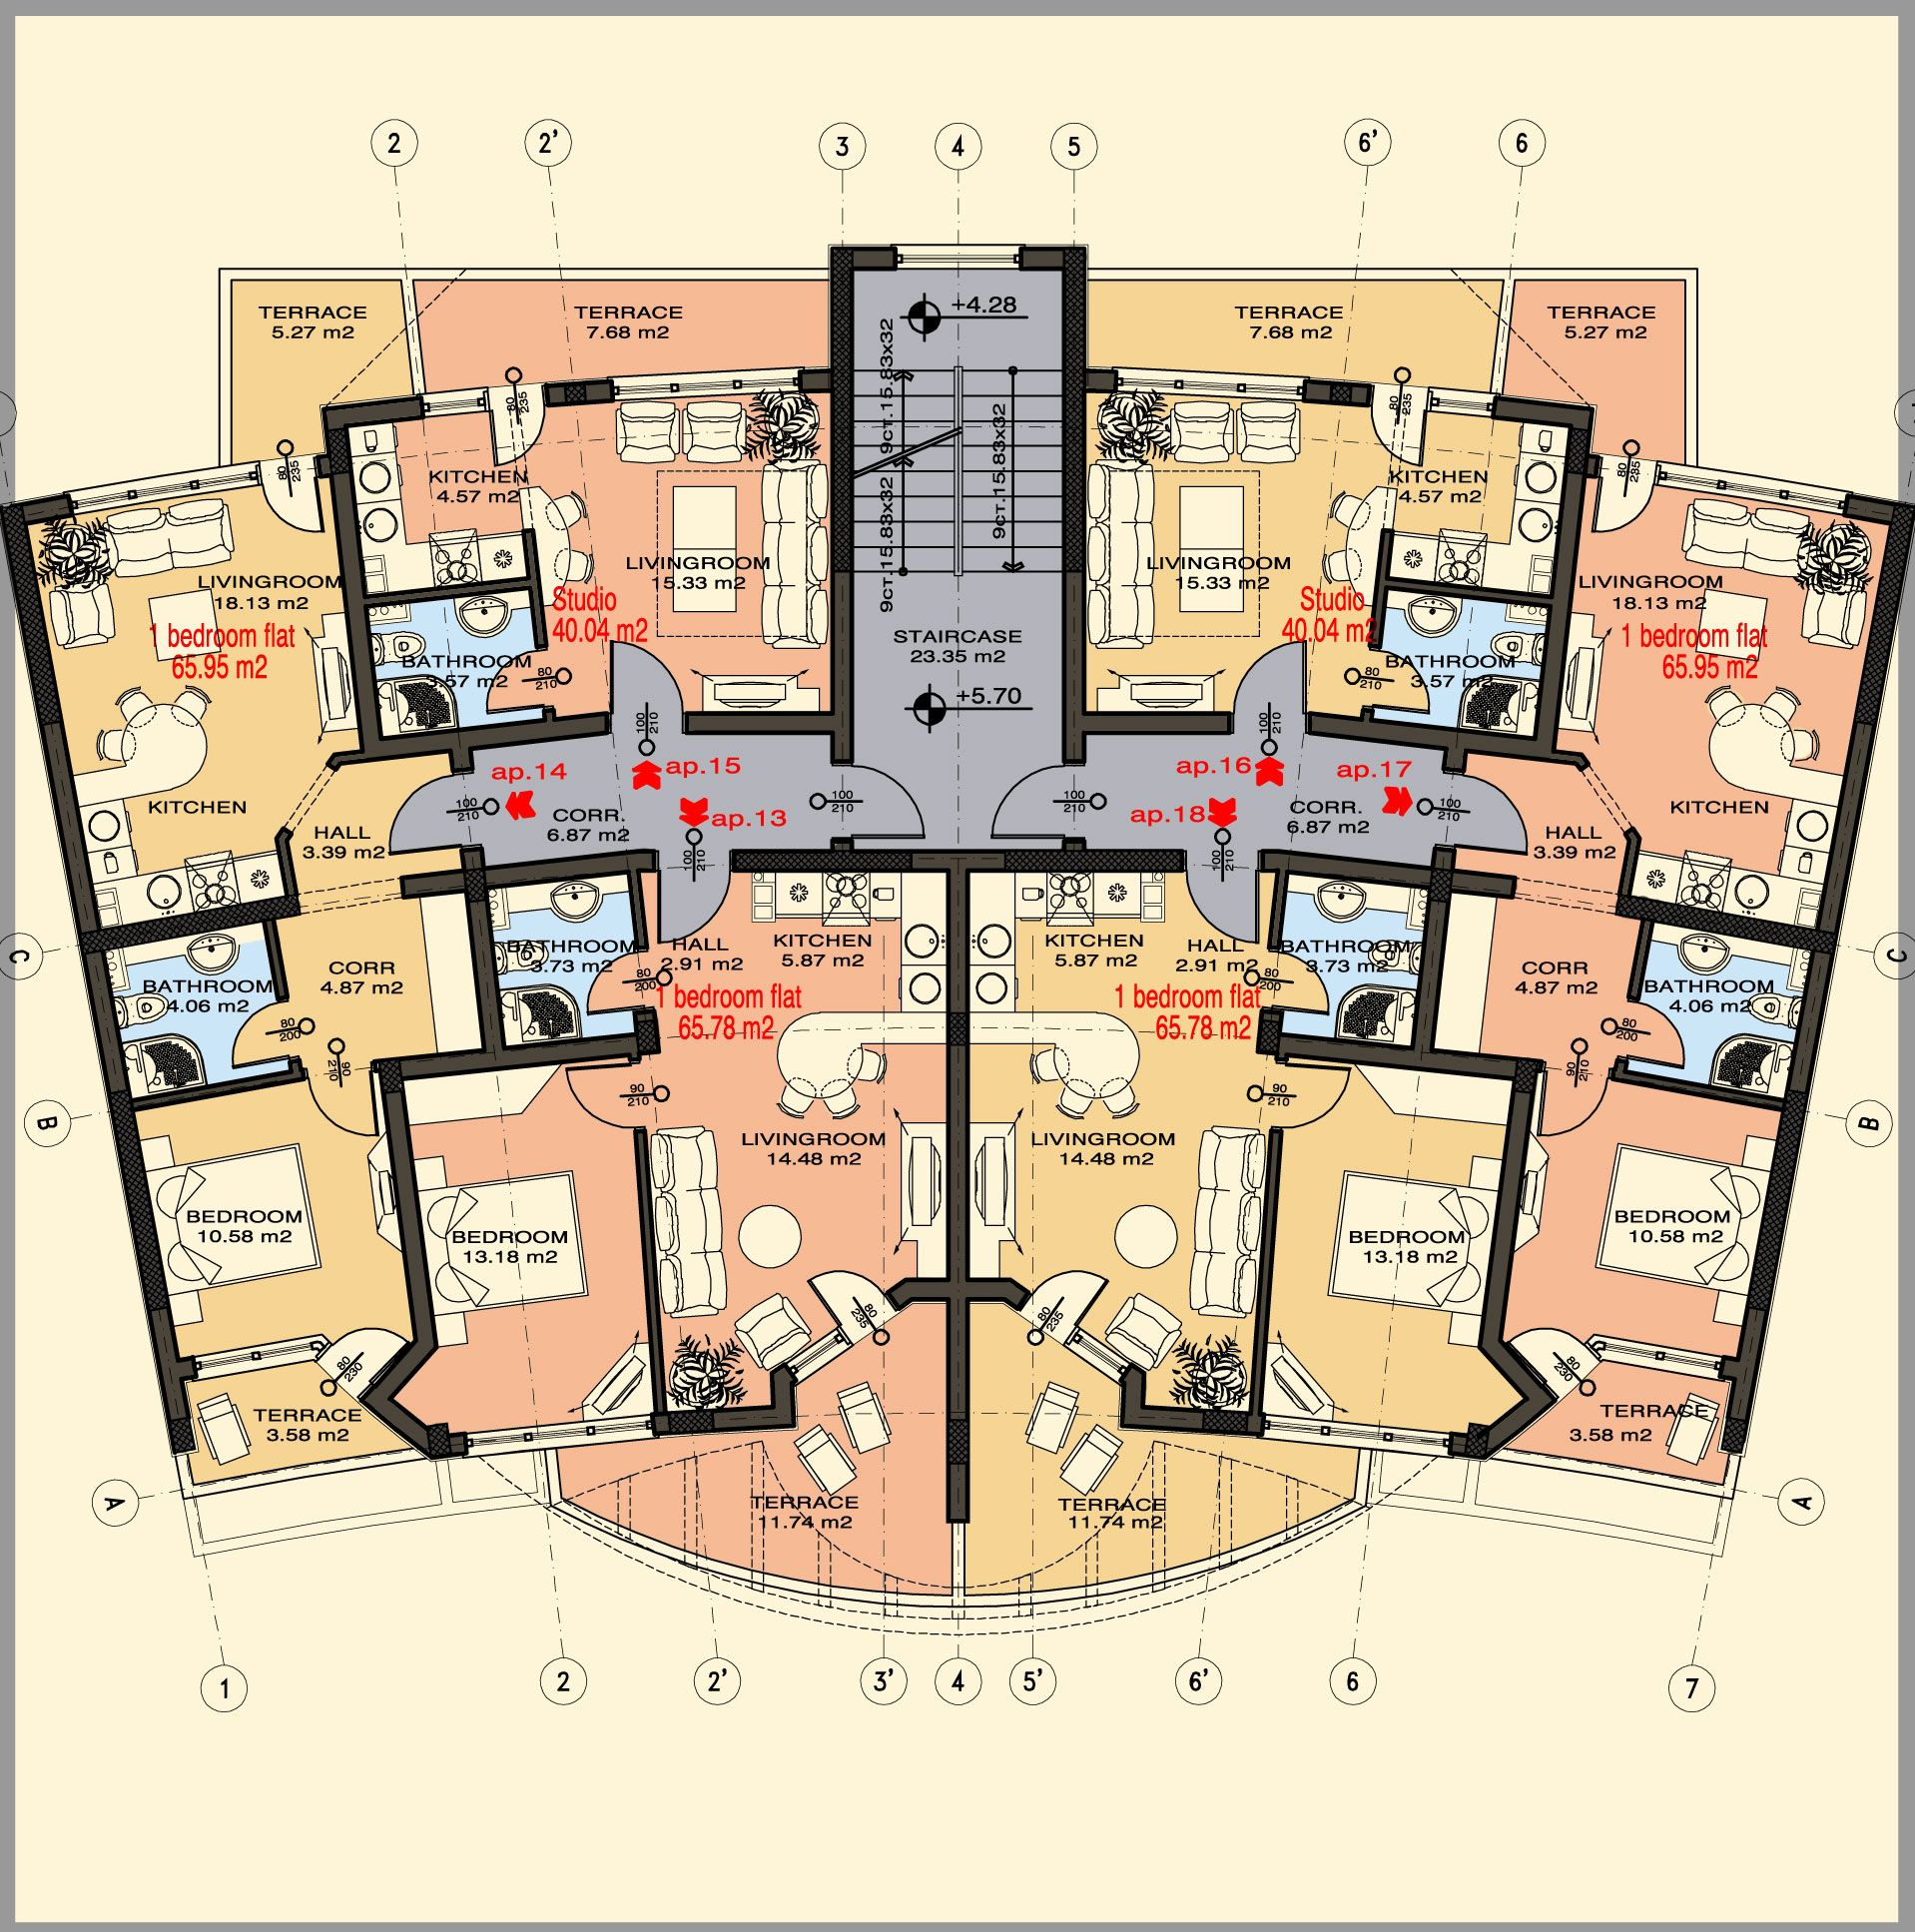 Apartment Building Floor Plans Picturesque Decoration Home Tips Or Other Apartment Building